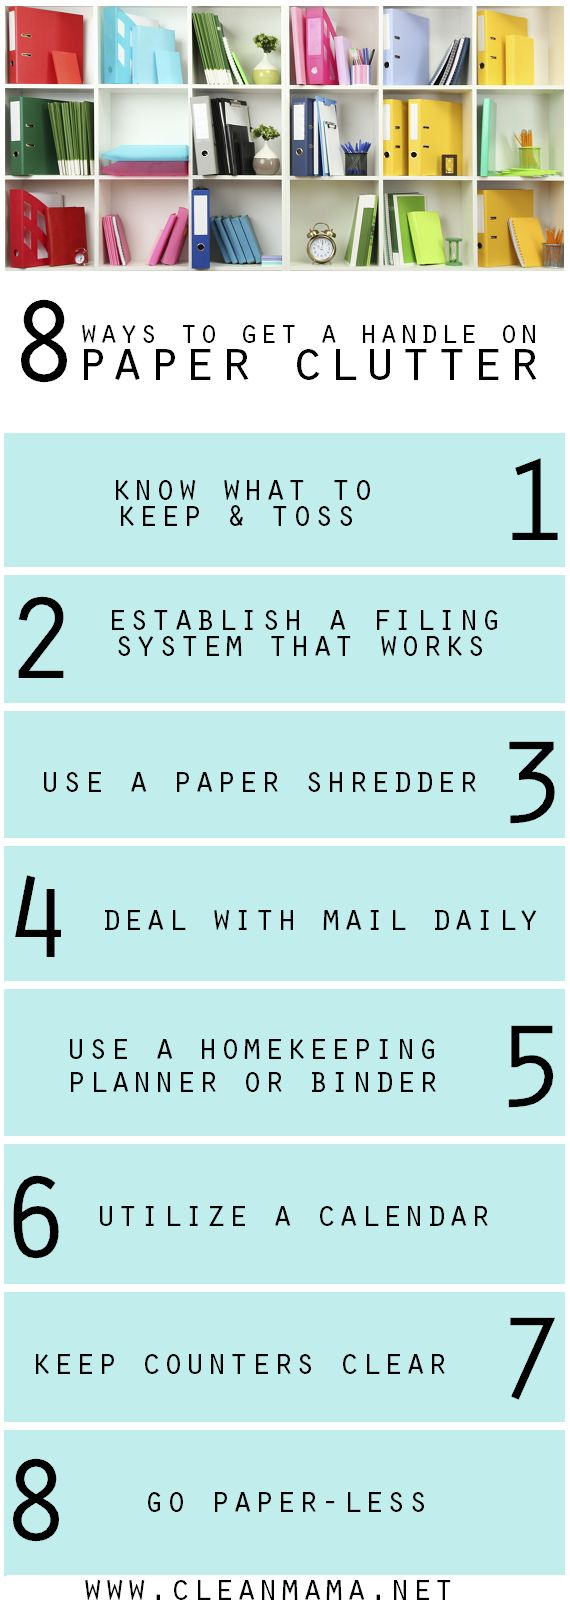 8 Ways to Get a Handle on Paper Clutter for Good | Clean Mama